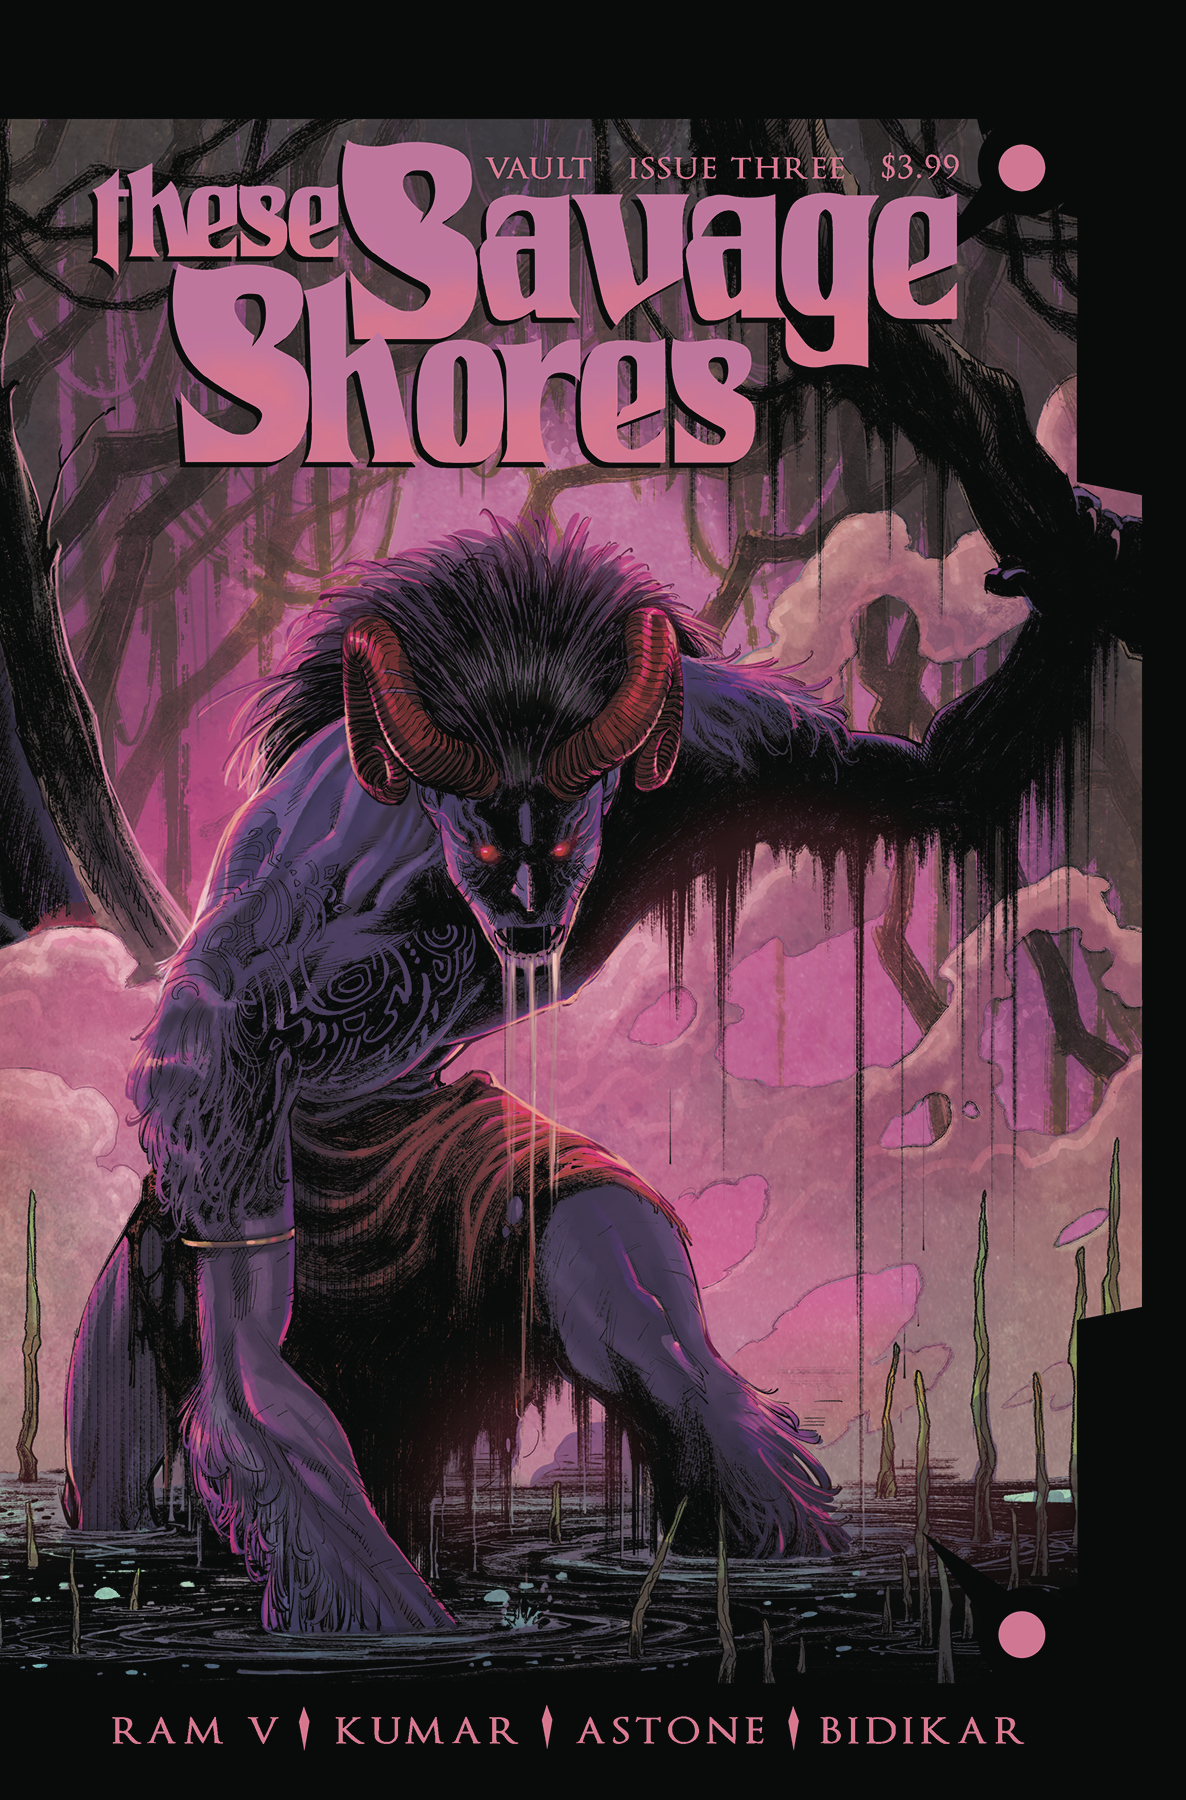 These Savage Shores #3  is out 2/6/2019.